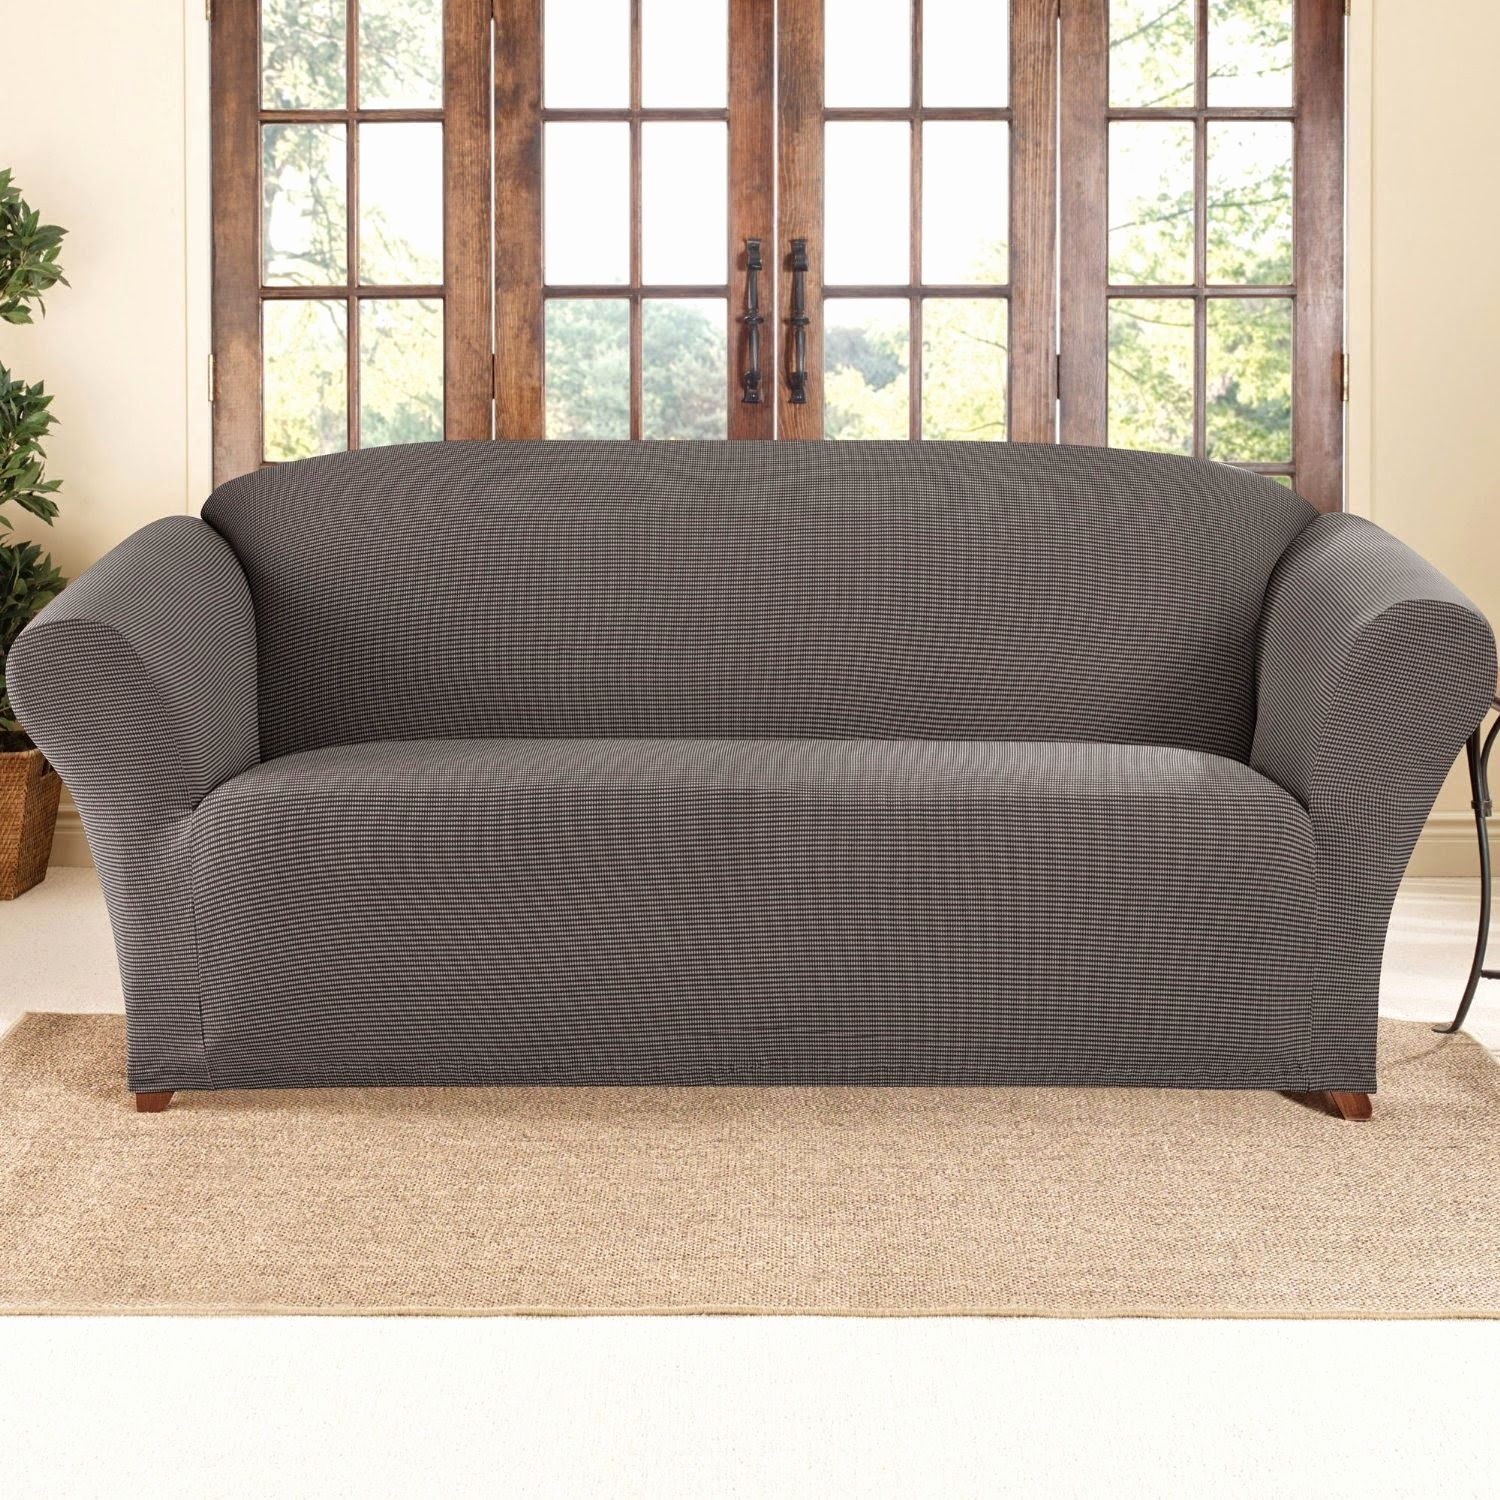 Pin by great sofas on Sofa Cover | Sofa, Couch covers, Sofa covers